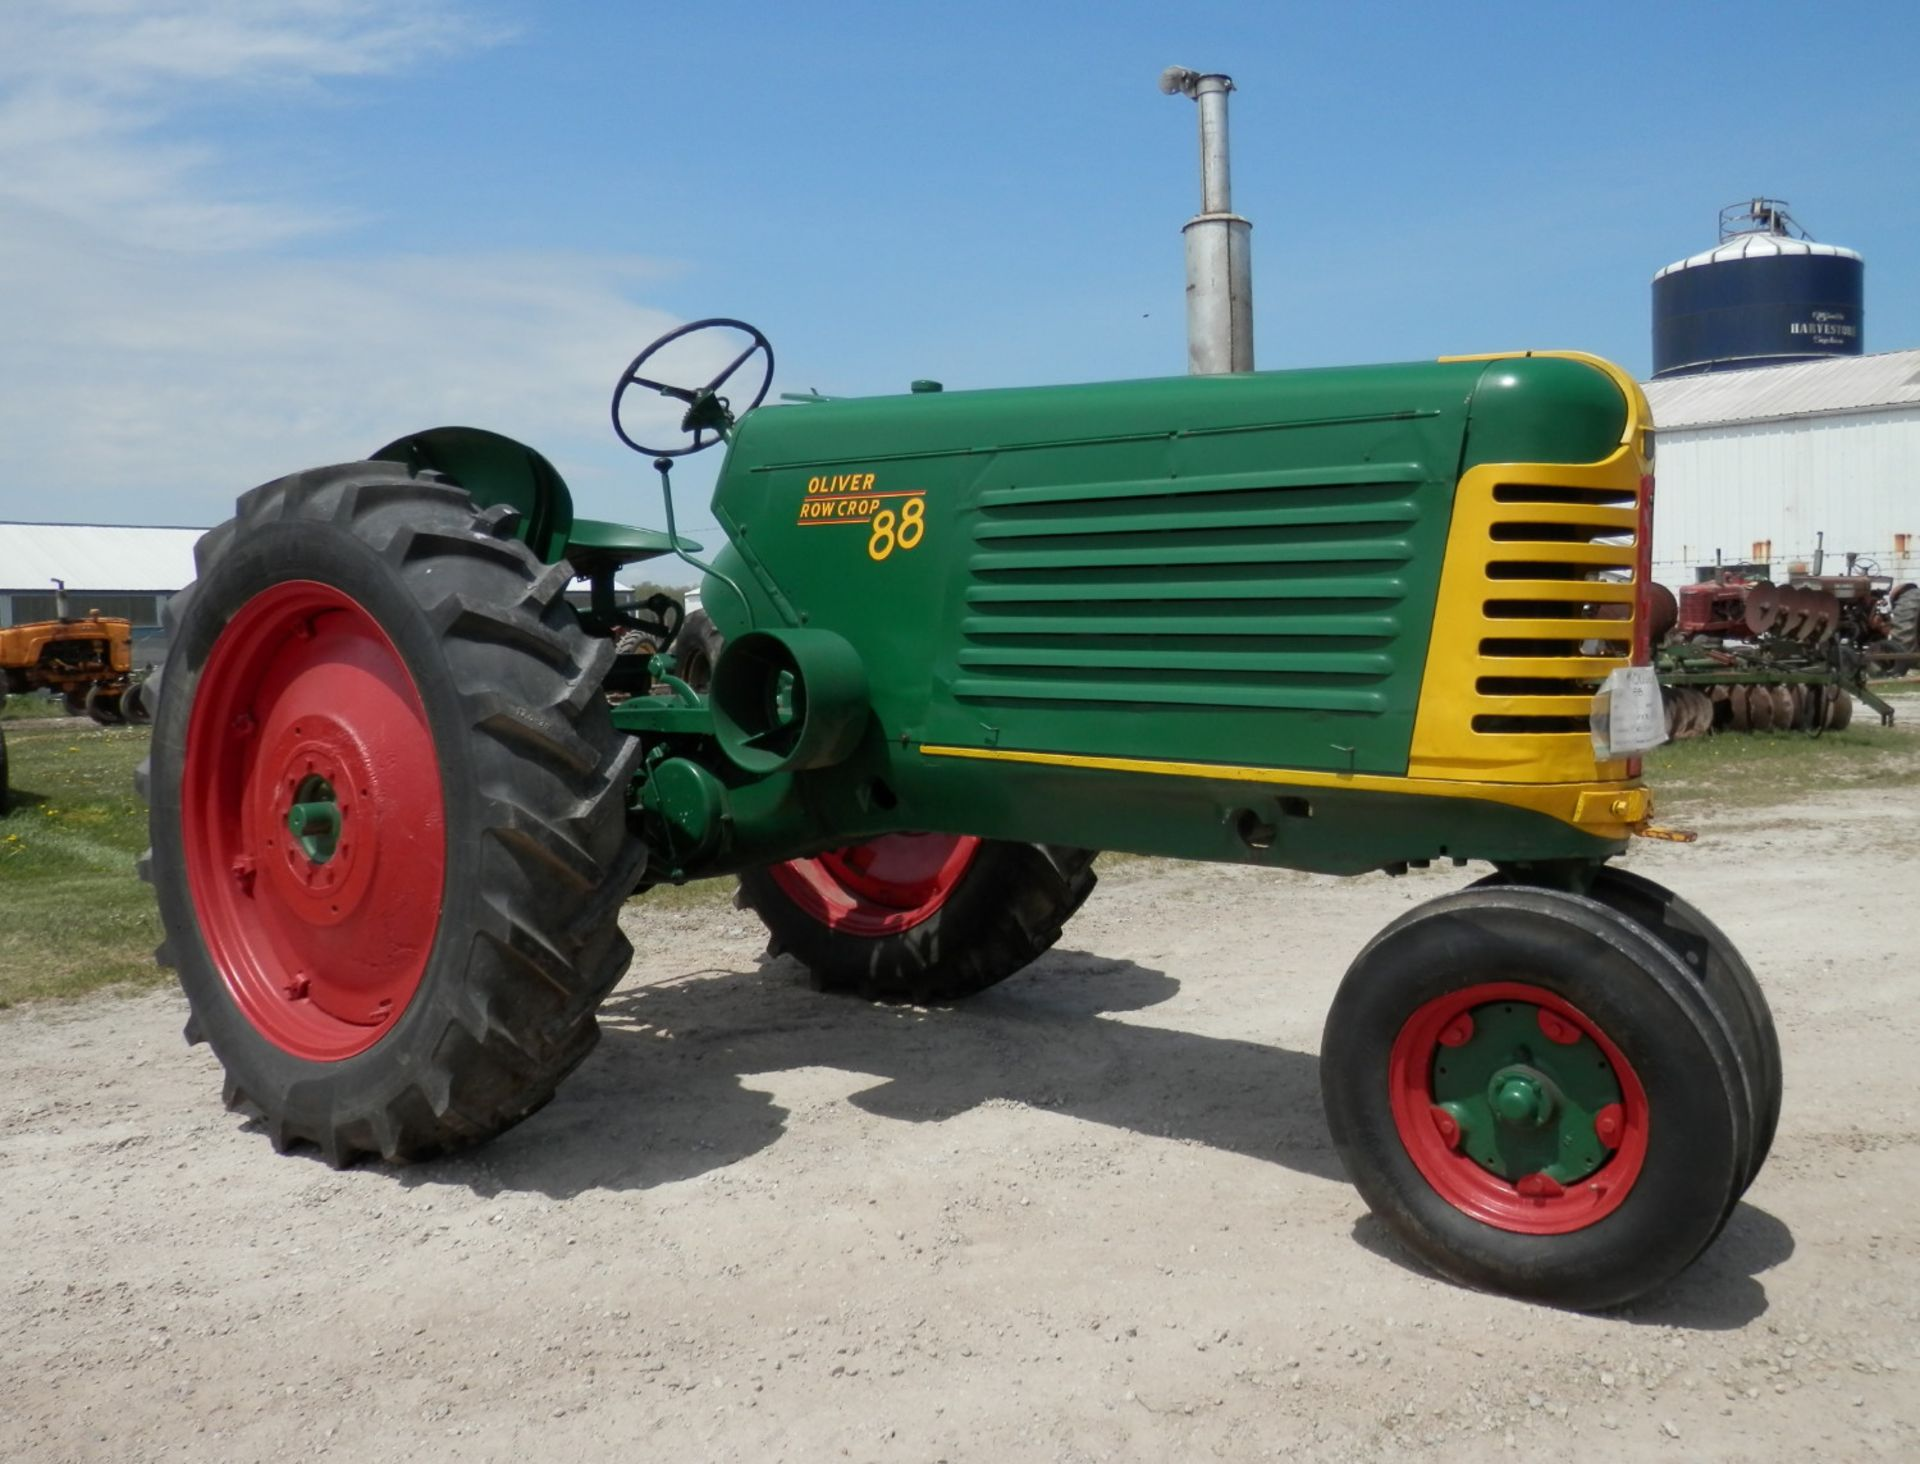 OLIVER 88 ROW CROP TRACTOR - Image 2 of 10